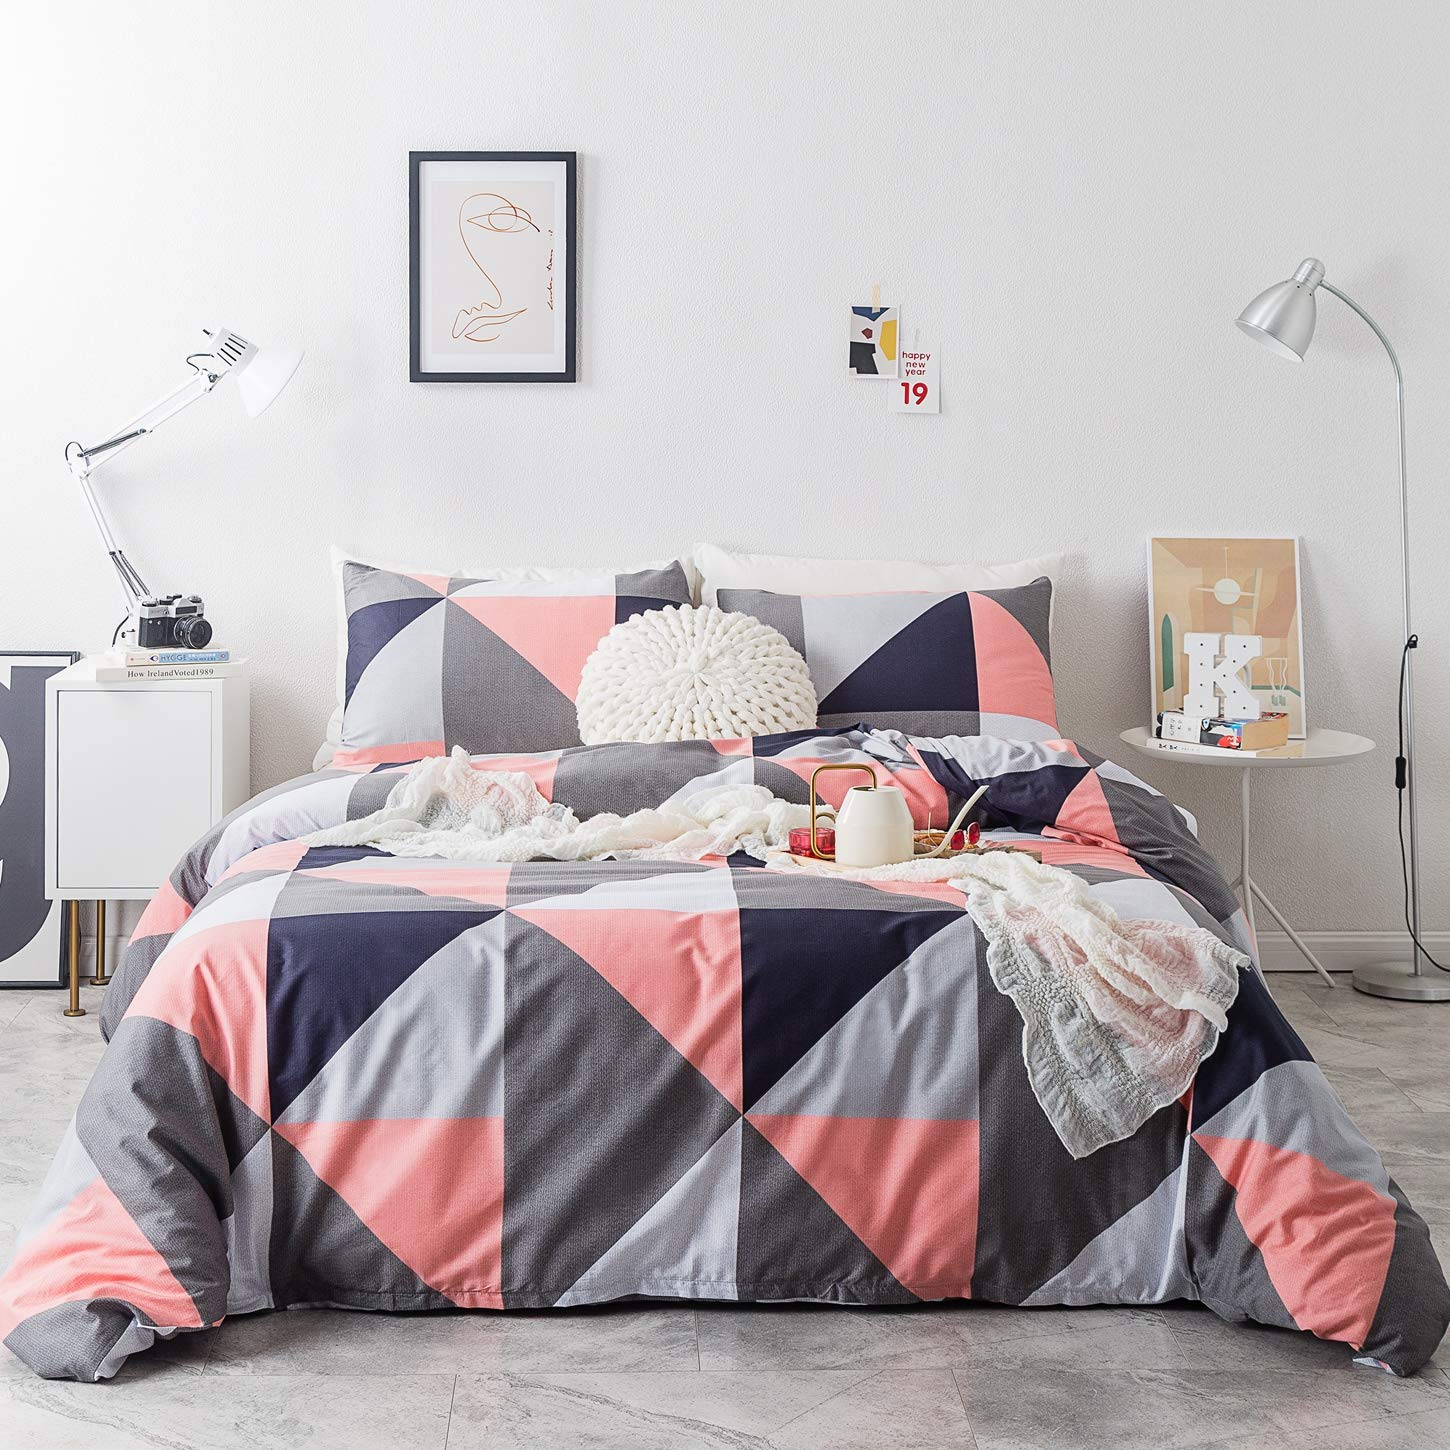 SUSYBAO 3 Piece Duvet Cover Set Queen Size 100% Natural Cotton Pink and Gray Triangle Bedding Set 1 Geometric Duvet Cover with Zipper Ties 2 Pillow Cases Hotel Quality Soft Breathable Lightweight Warm